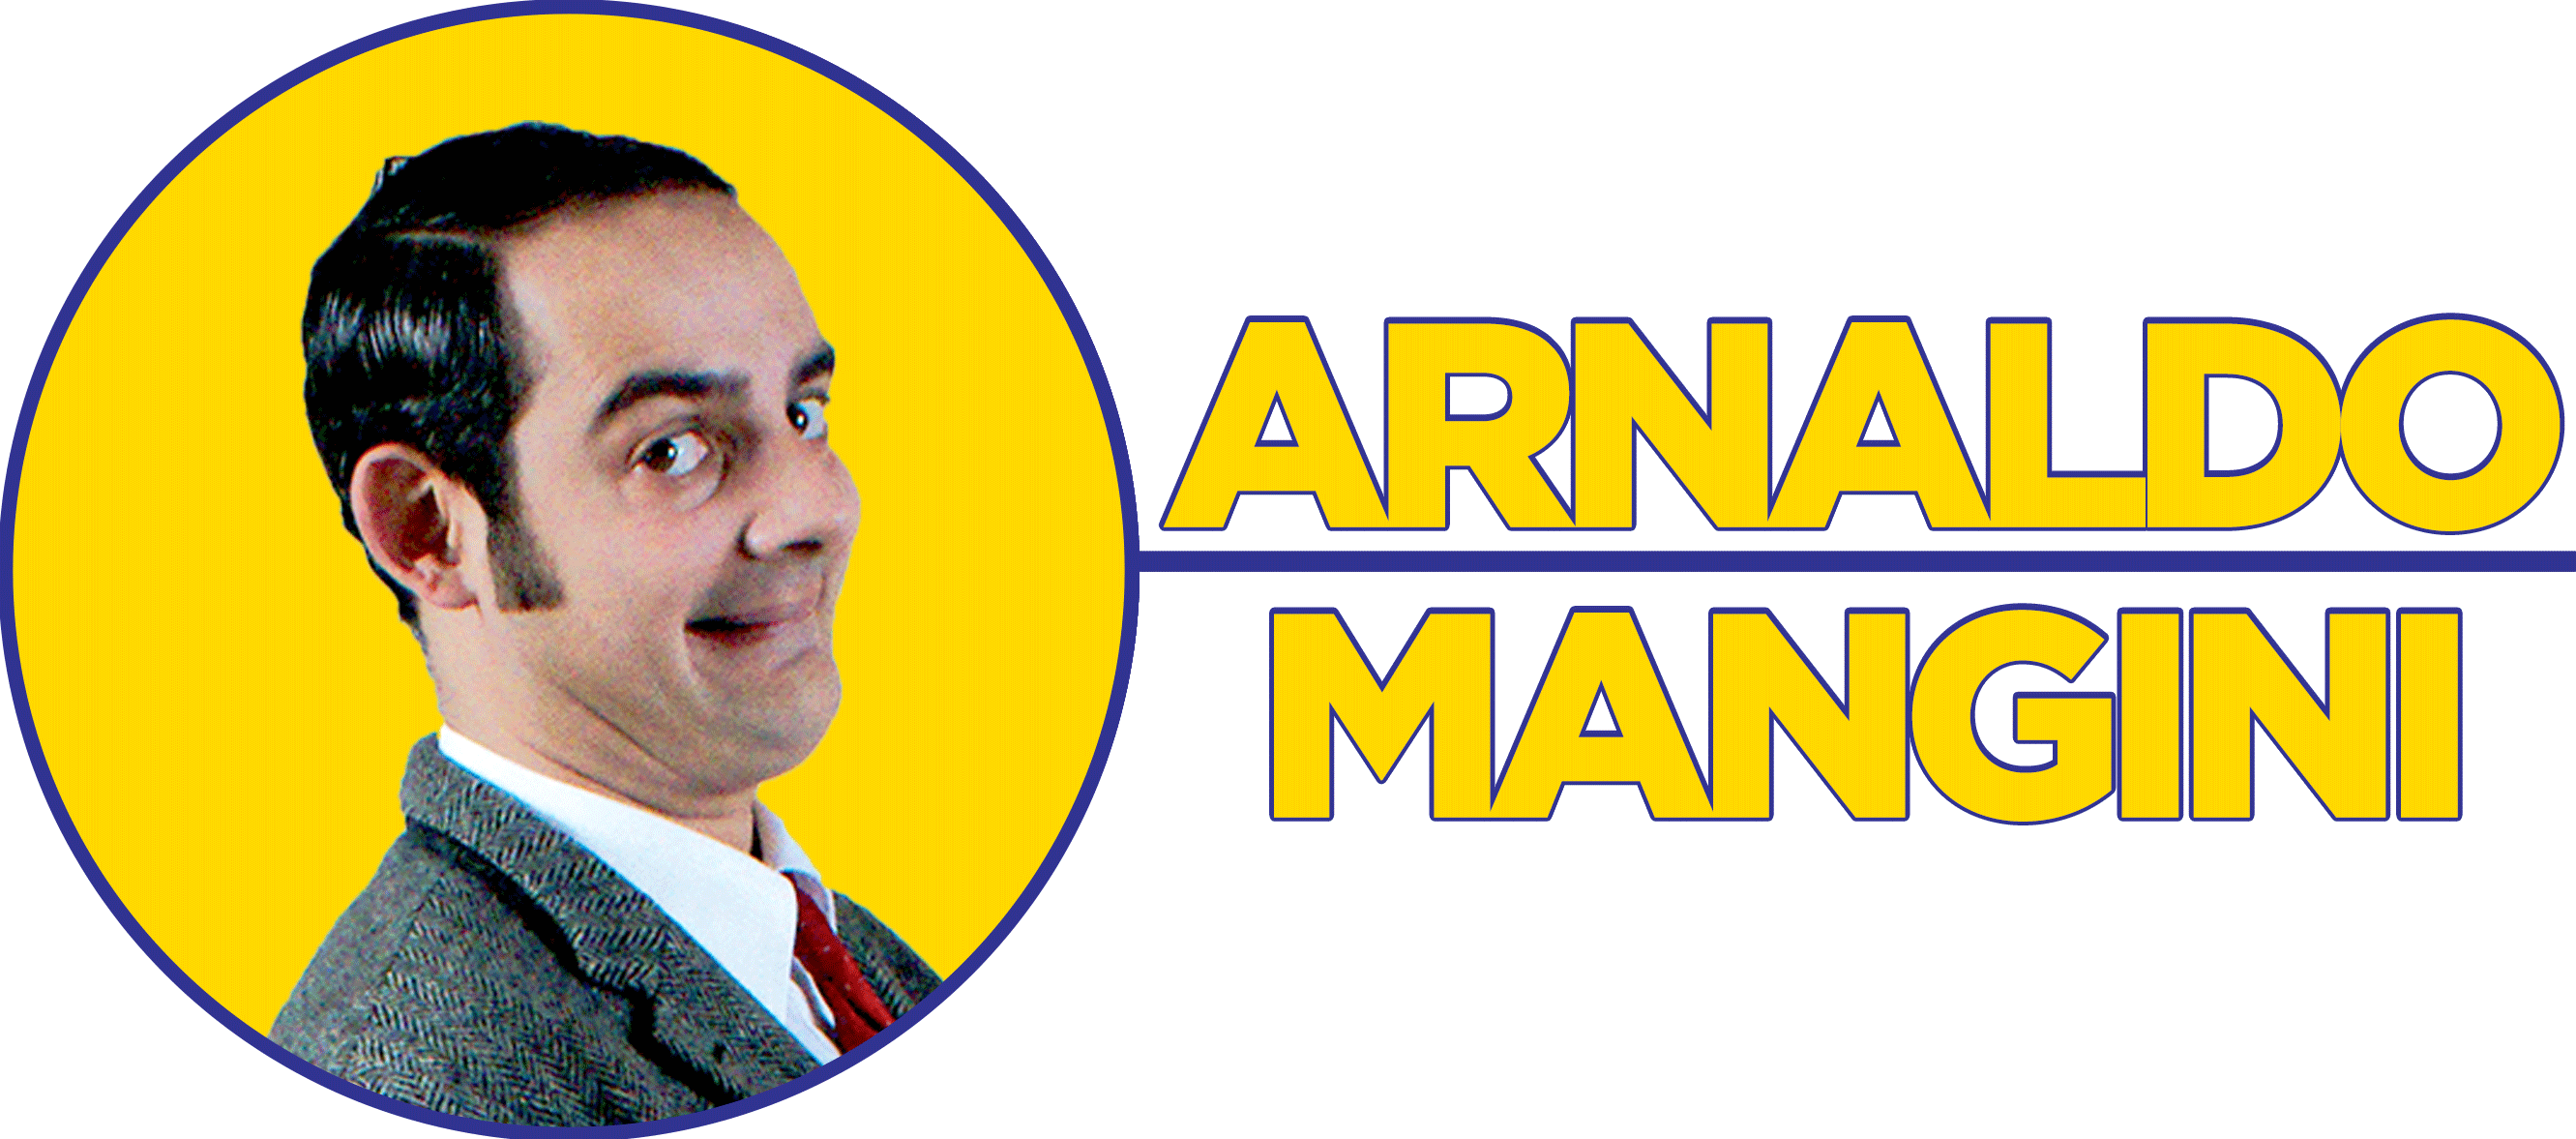 creare Archivi - Arnaldo Mangini Clown Actor / MrBean Lookalike